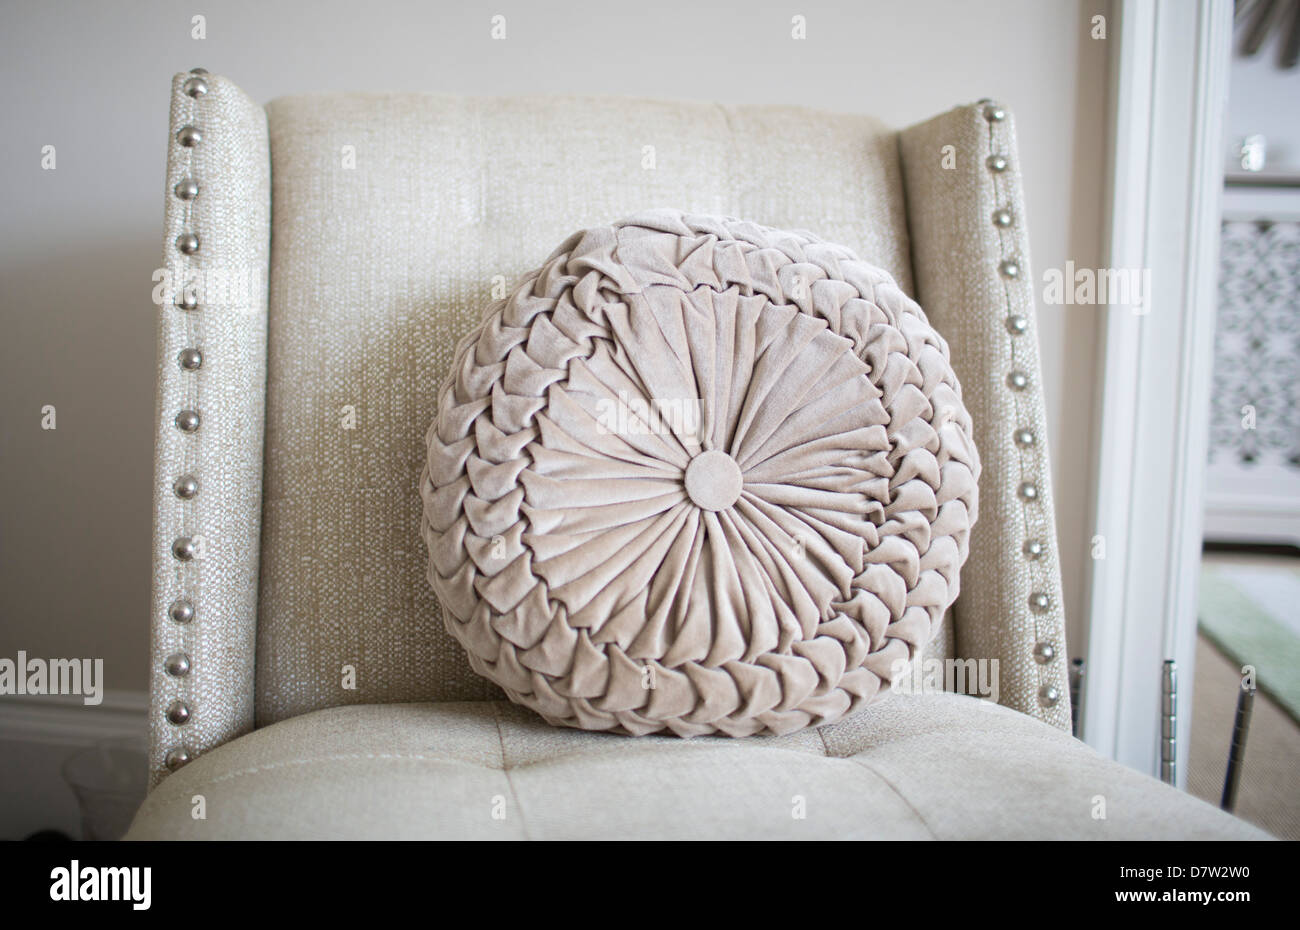 An ornate pleated or ruched cushion sitting on a chair. - Stock Image